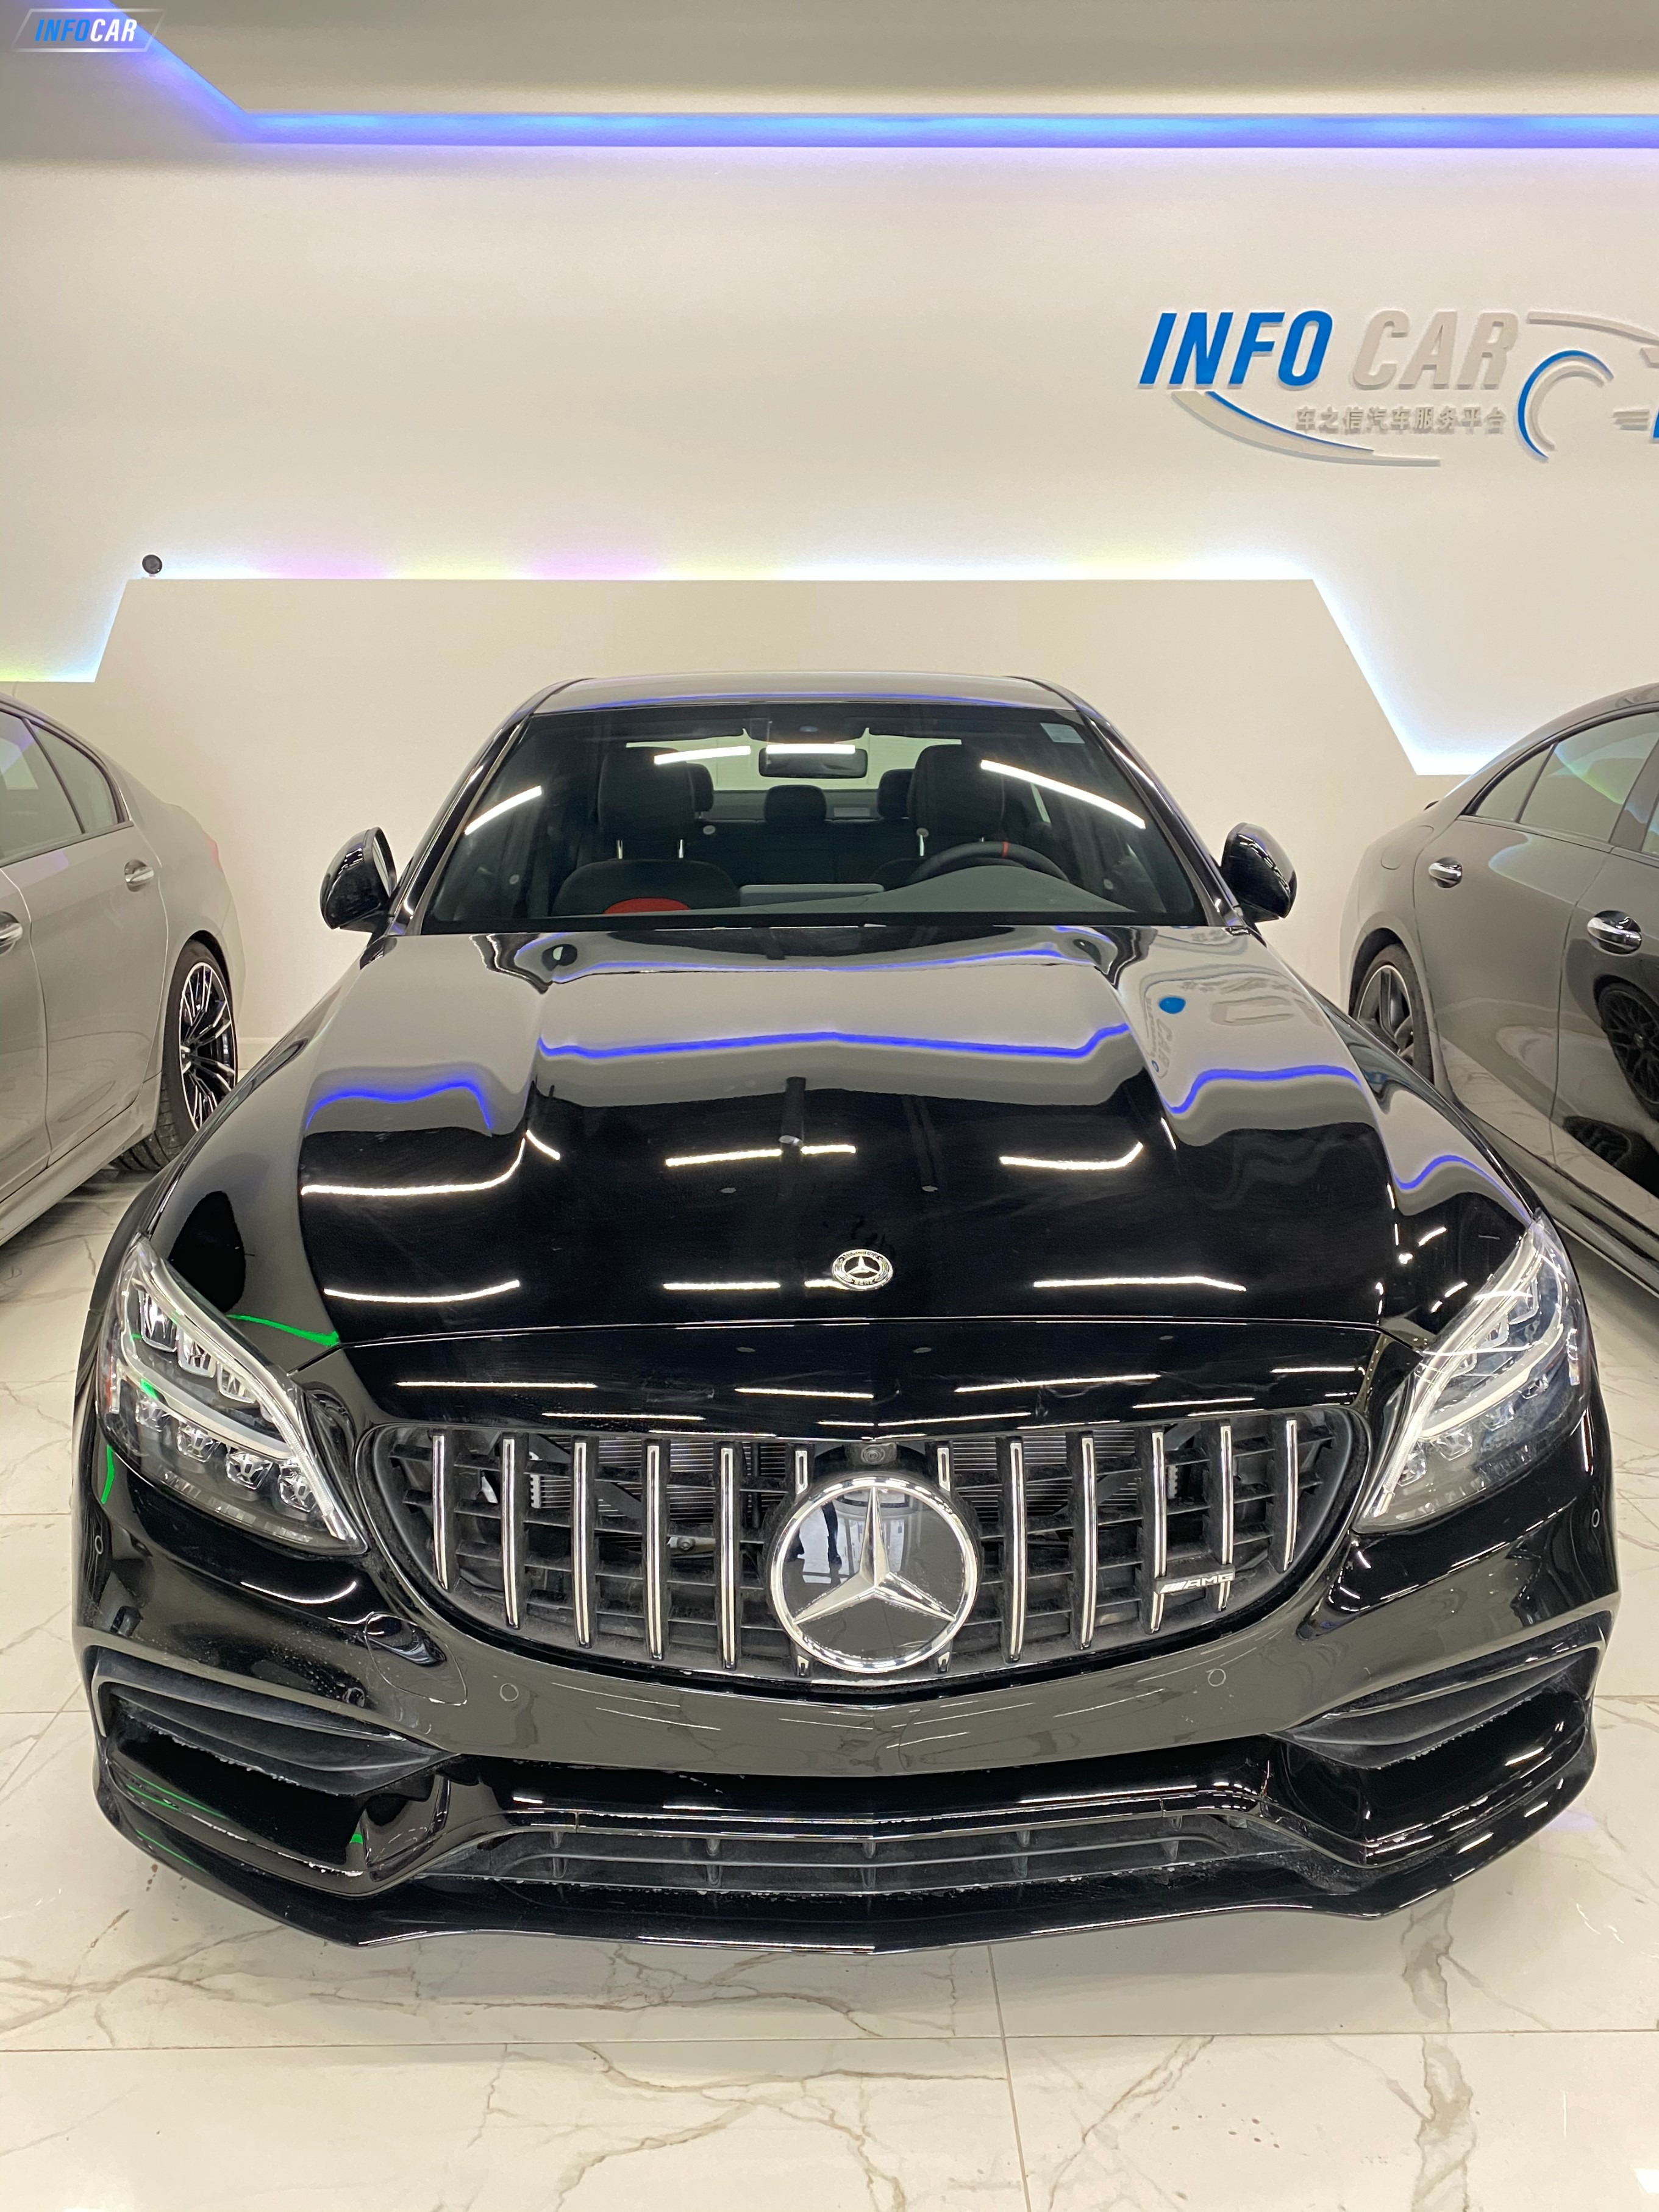 2019 Mercedes-Benz C-Class C63s - INFOCAR - Toronto's Most Comprehensive New and Used Auto Trading Platform